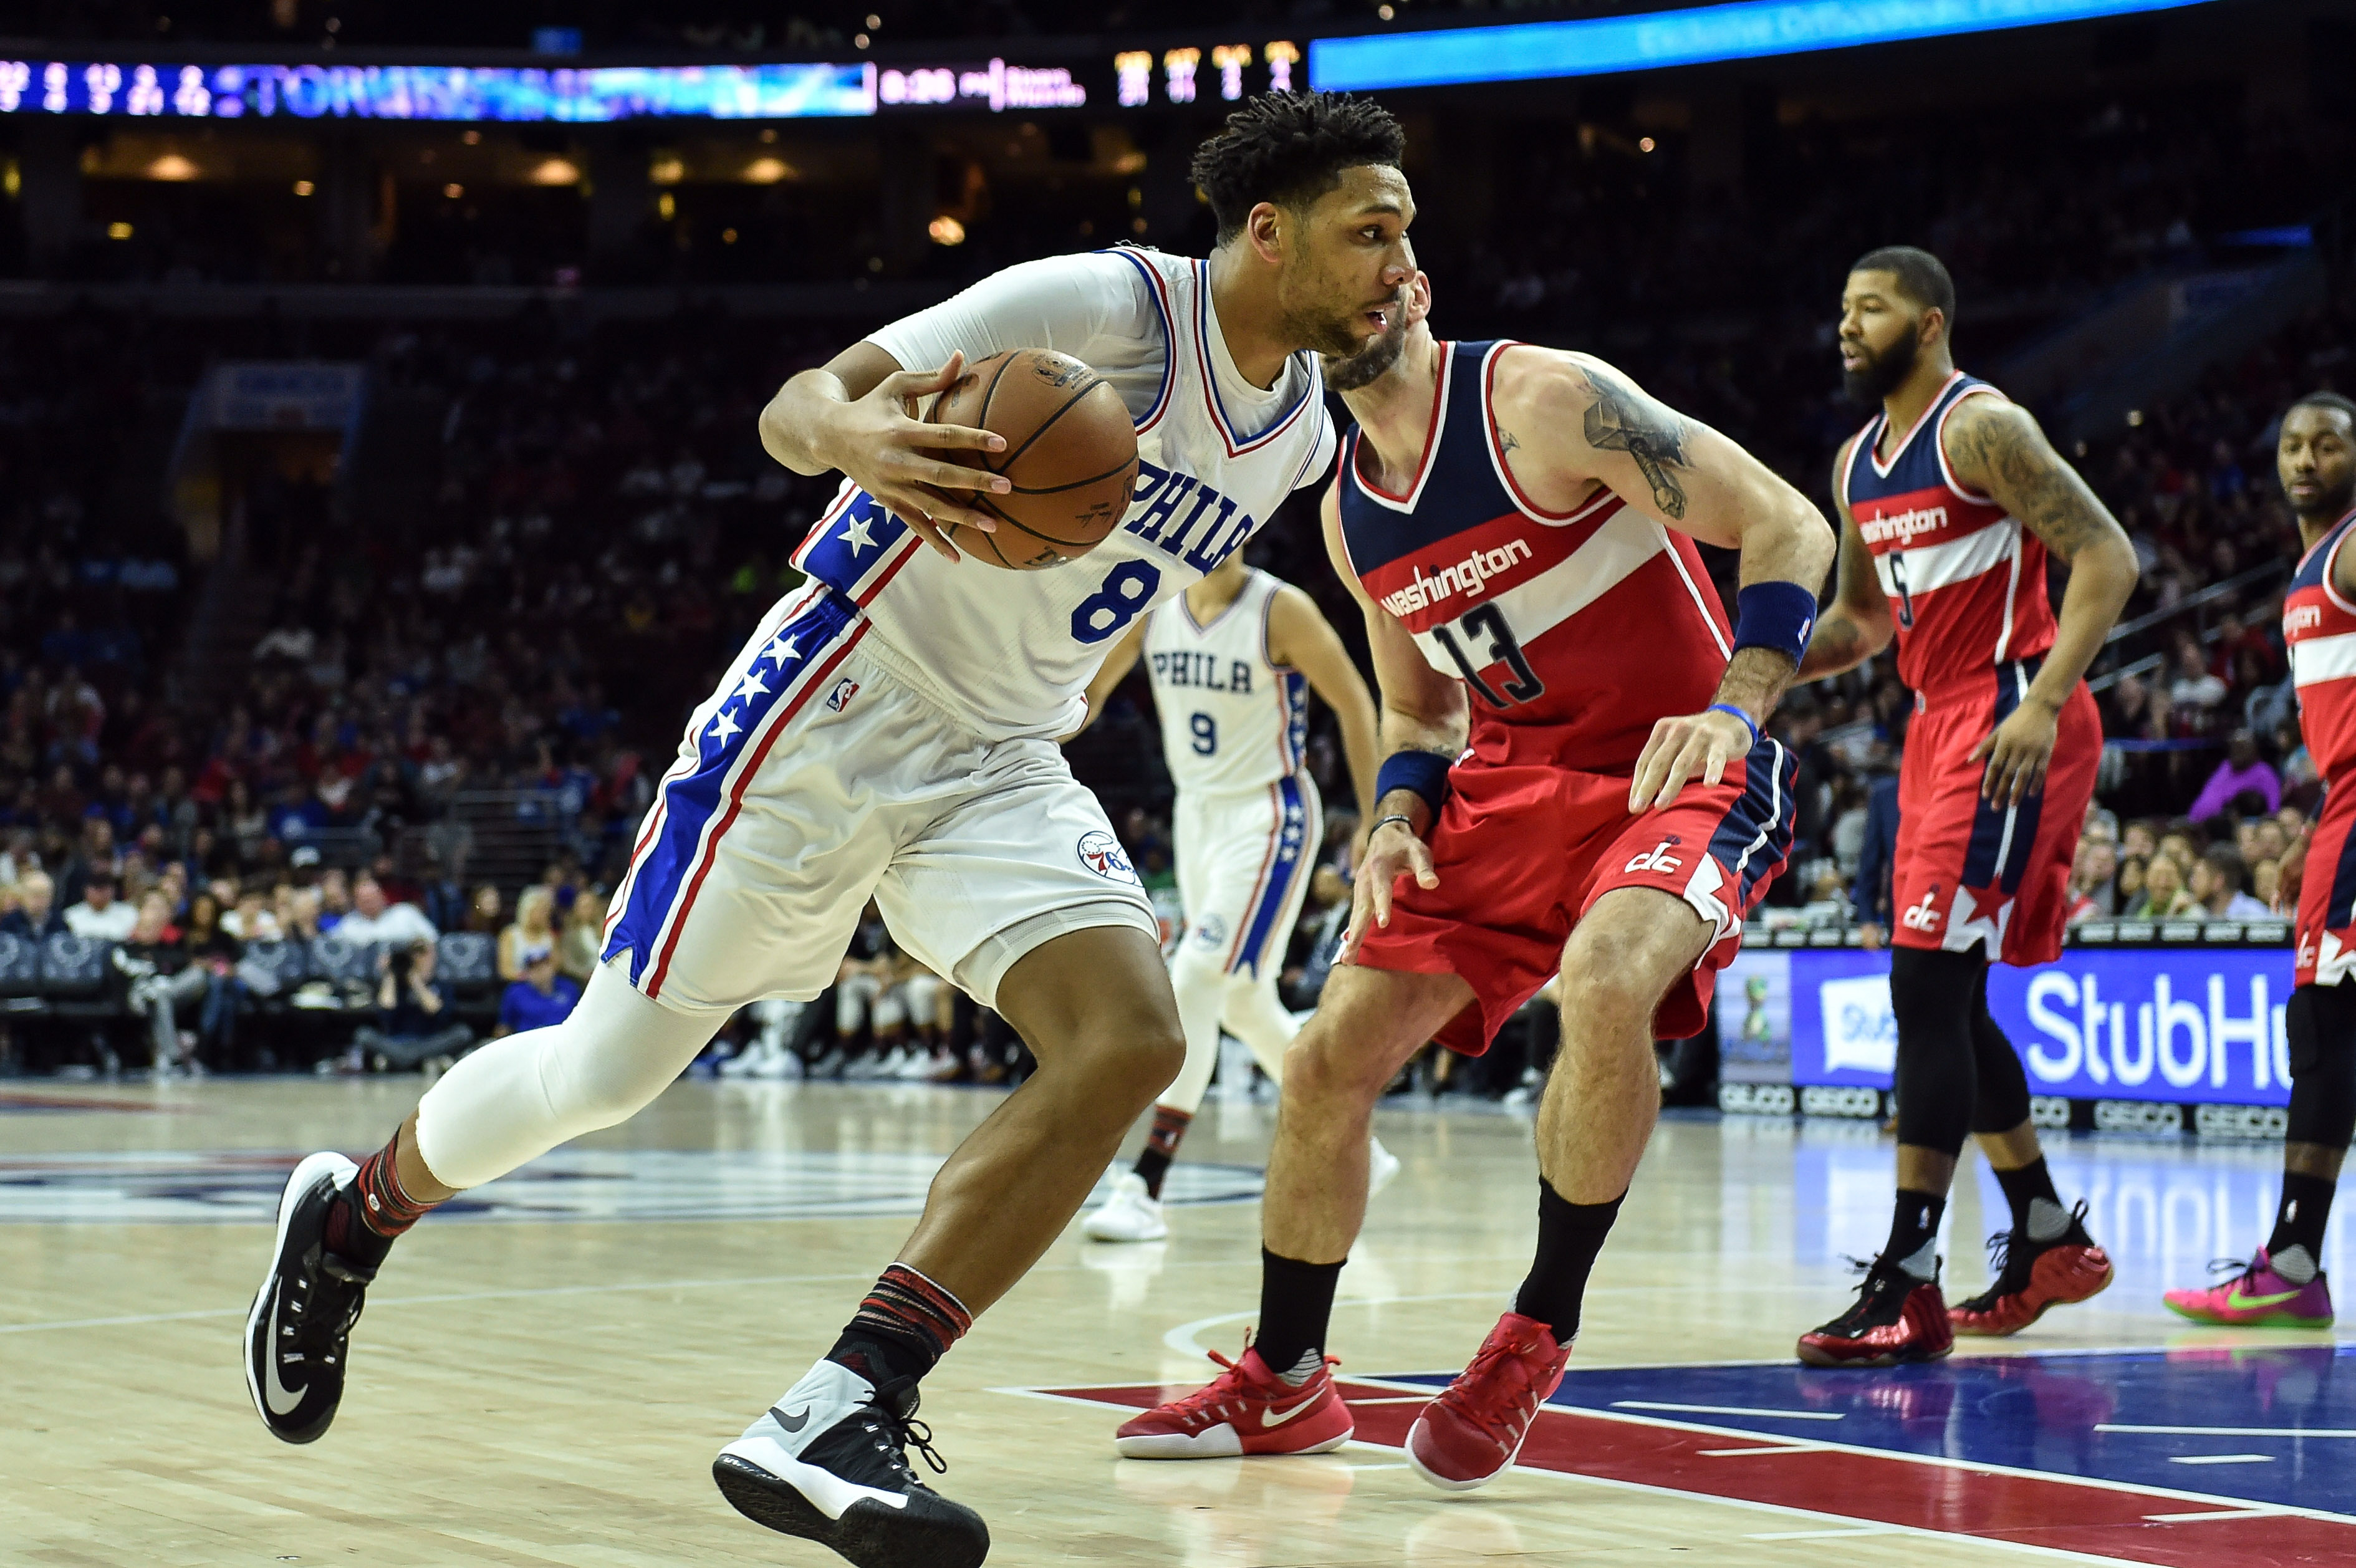 9898039-nba-washington-wizards-at-philadelphia-76ers-1